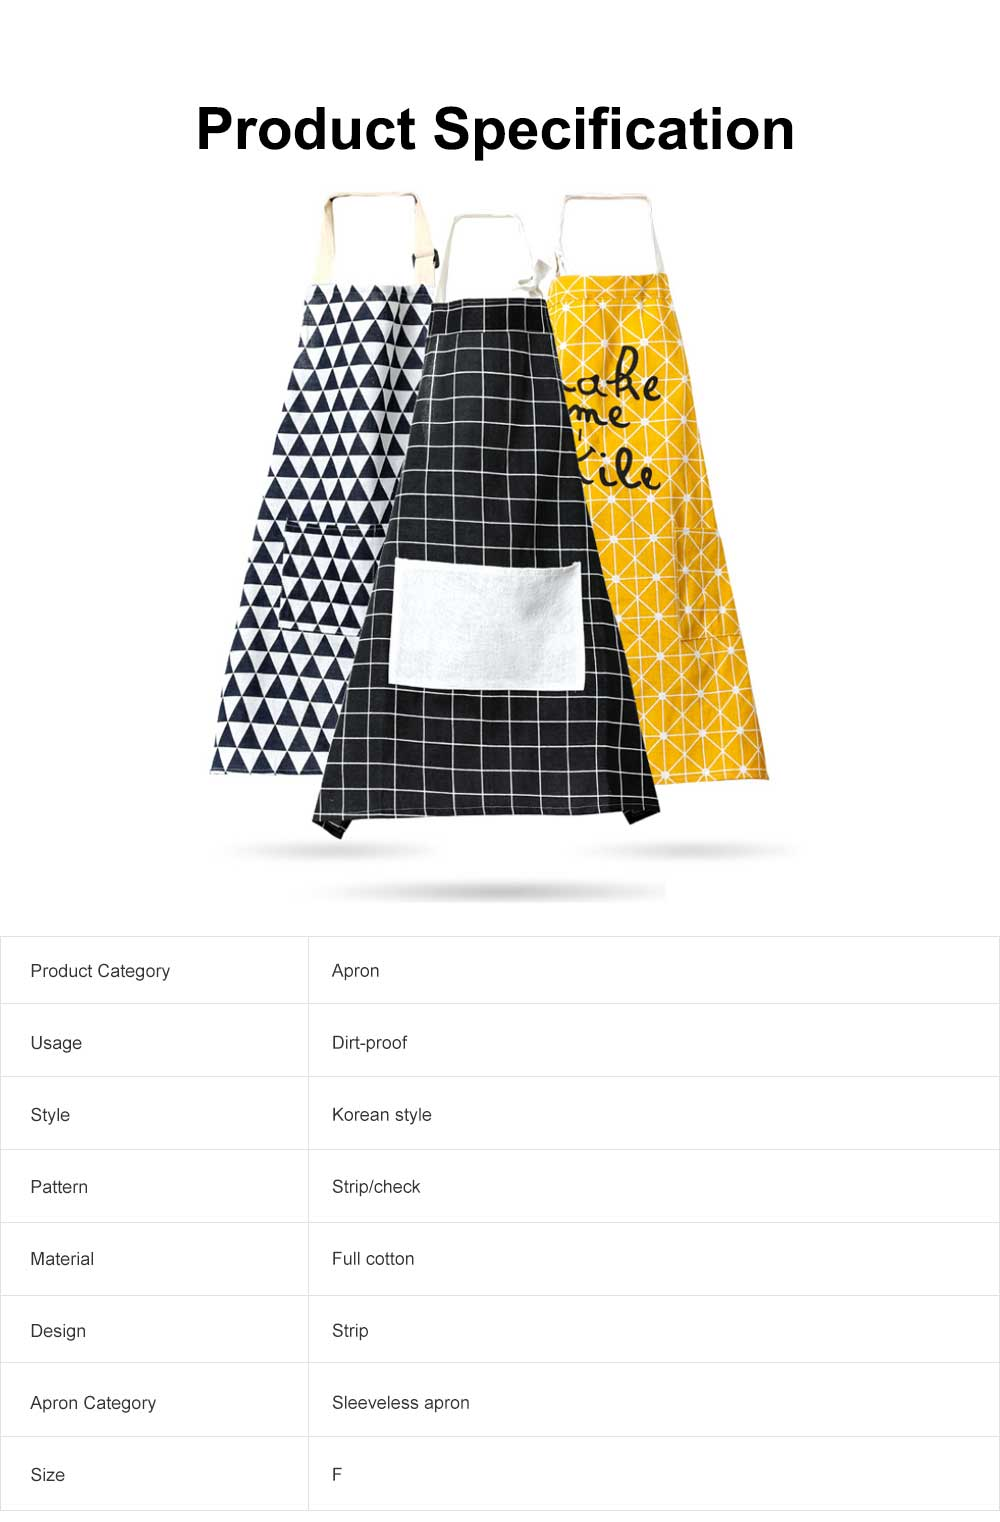 Fashionable Apron for Kitchen 100% Cooking Apron with Pocket Aprons with Strip Dot Printing Patterns Household Accessory 6